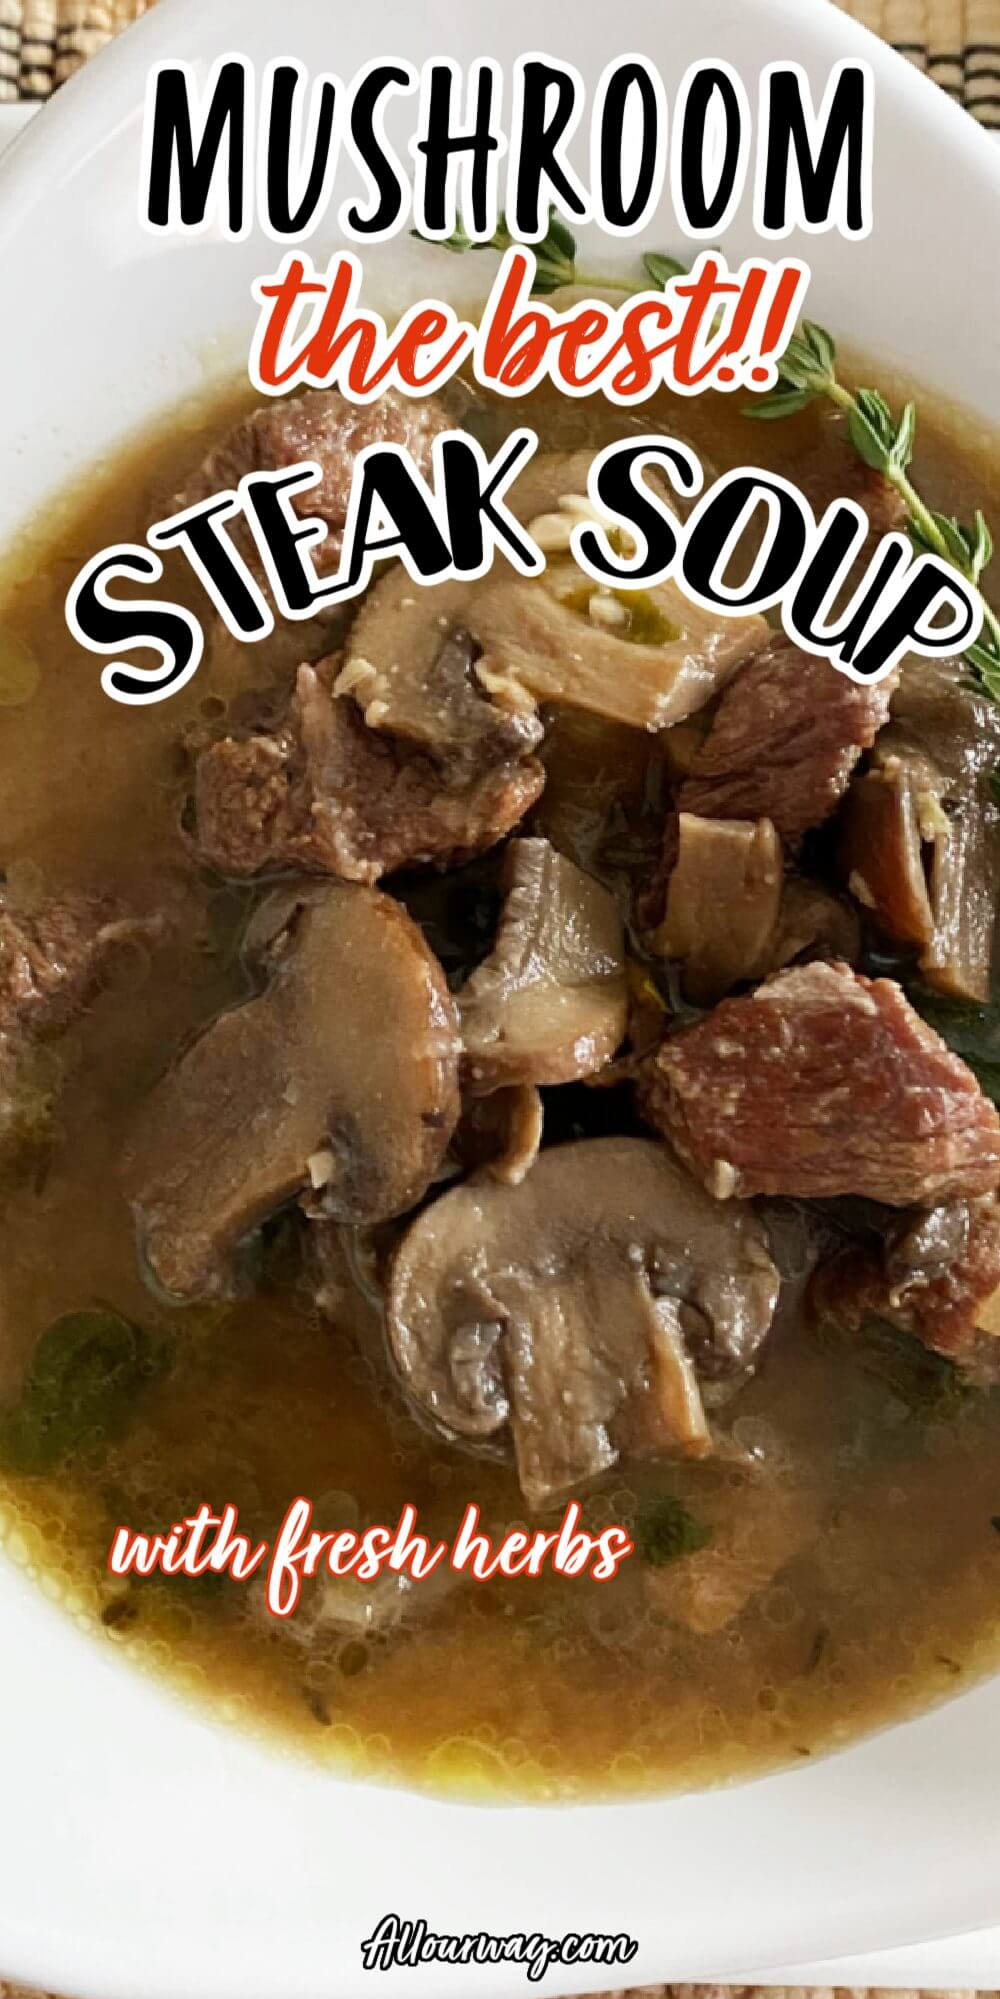 Juicy tender bites of beef in a mushroom infused broth makes up a hearty soup that reminds you of a rich stew in soup form. This soup is much lighter than a stew with the baby spinach and kale instead of the heavier root vegetables. This soup is a complete meal in itself.#beefsoup, #steaksoup, #mushroomsteaksoup, #heartysoup, #wildmushroomsoup, #chucksteak, #bestbeefforsoupstew